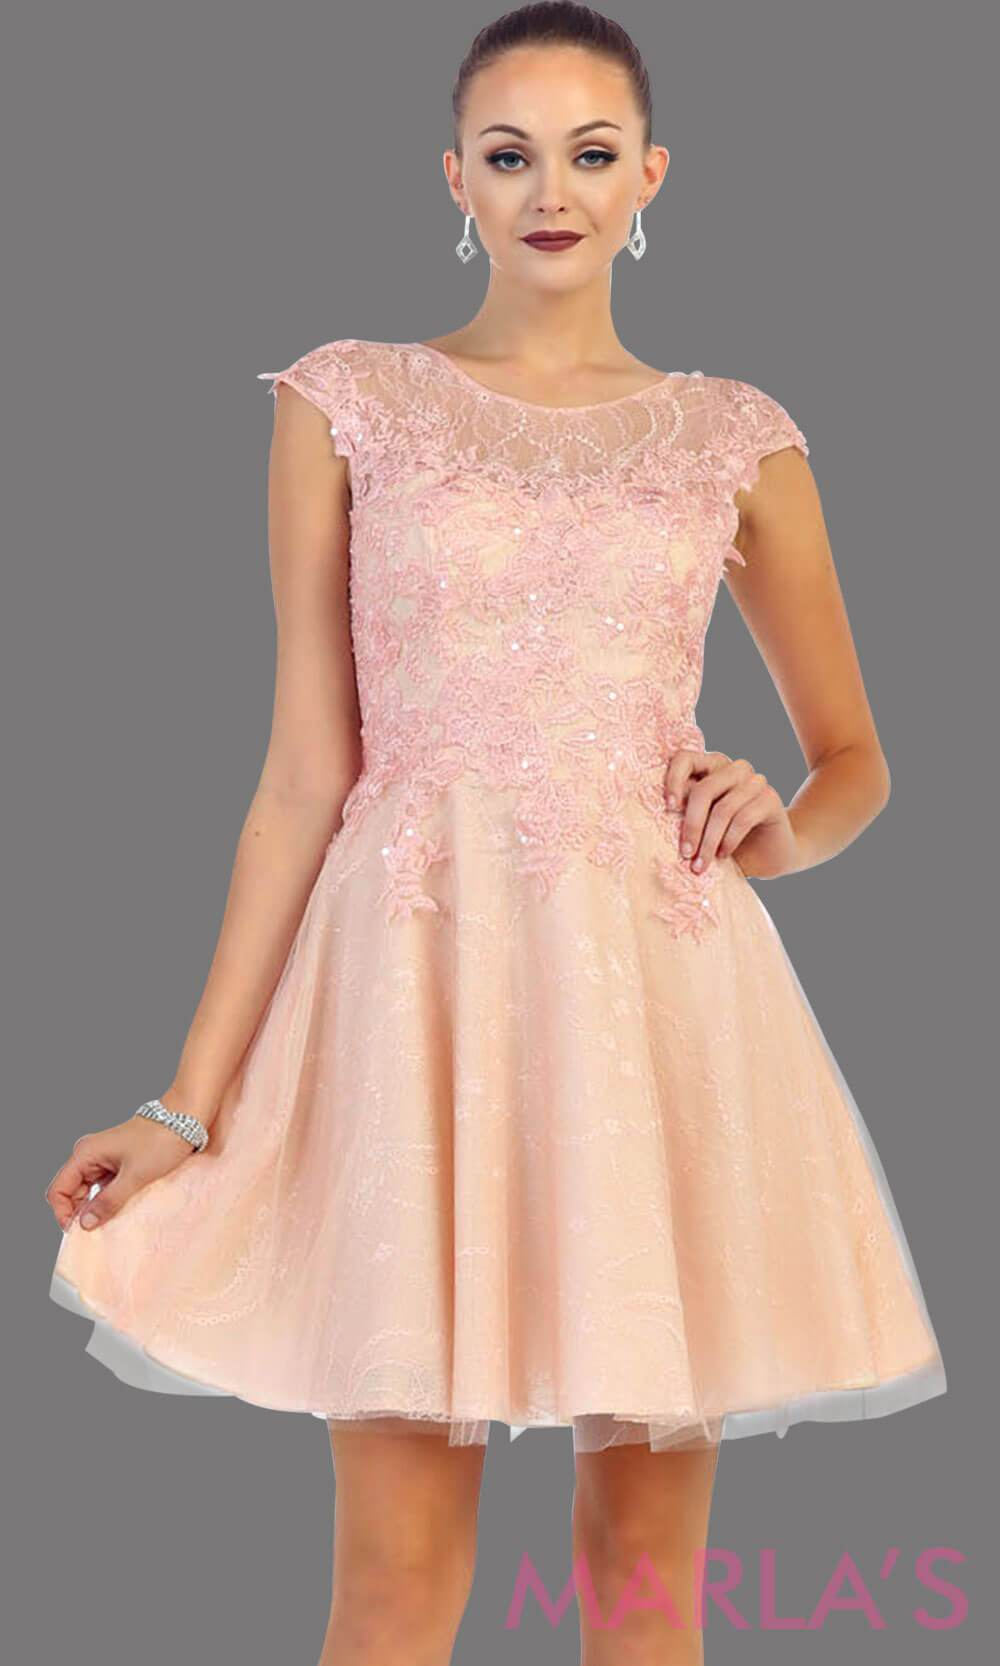 High neck short blush puffy dress with lace bodice. This pink short grade 8 graduation dress has a low v back. This is perfect for homecoming, semi formal, or party dress. Available in plus sizes.